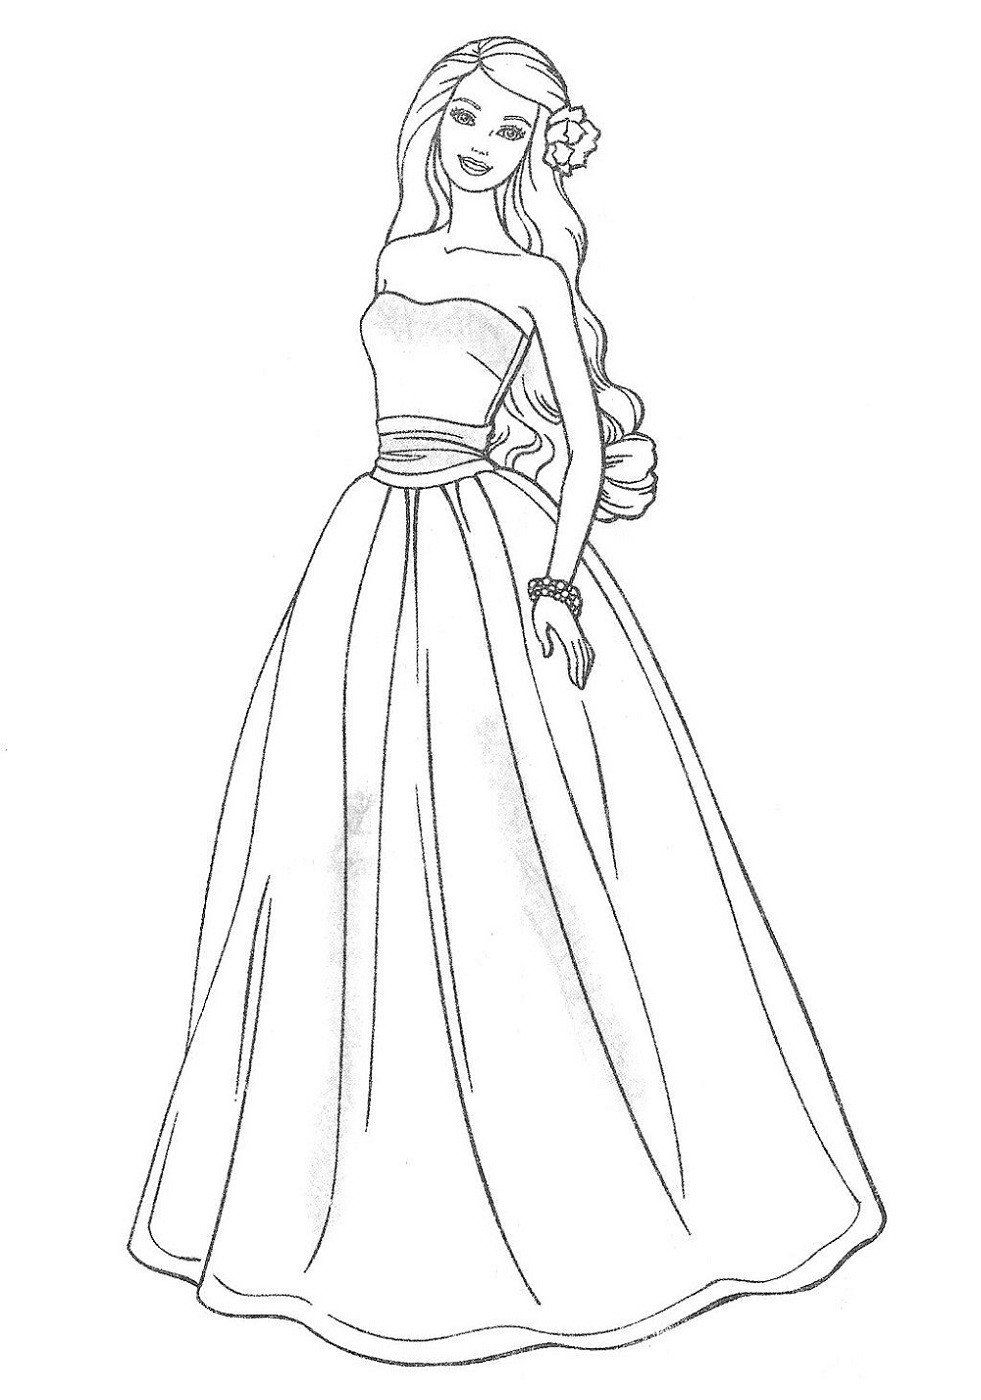 Coloring Pages For Girls Wedding Dress Coloring Pages For Girls In 2020 Barbie Coloring Pages Barbie Coloring Coloring Pages For Girls